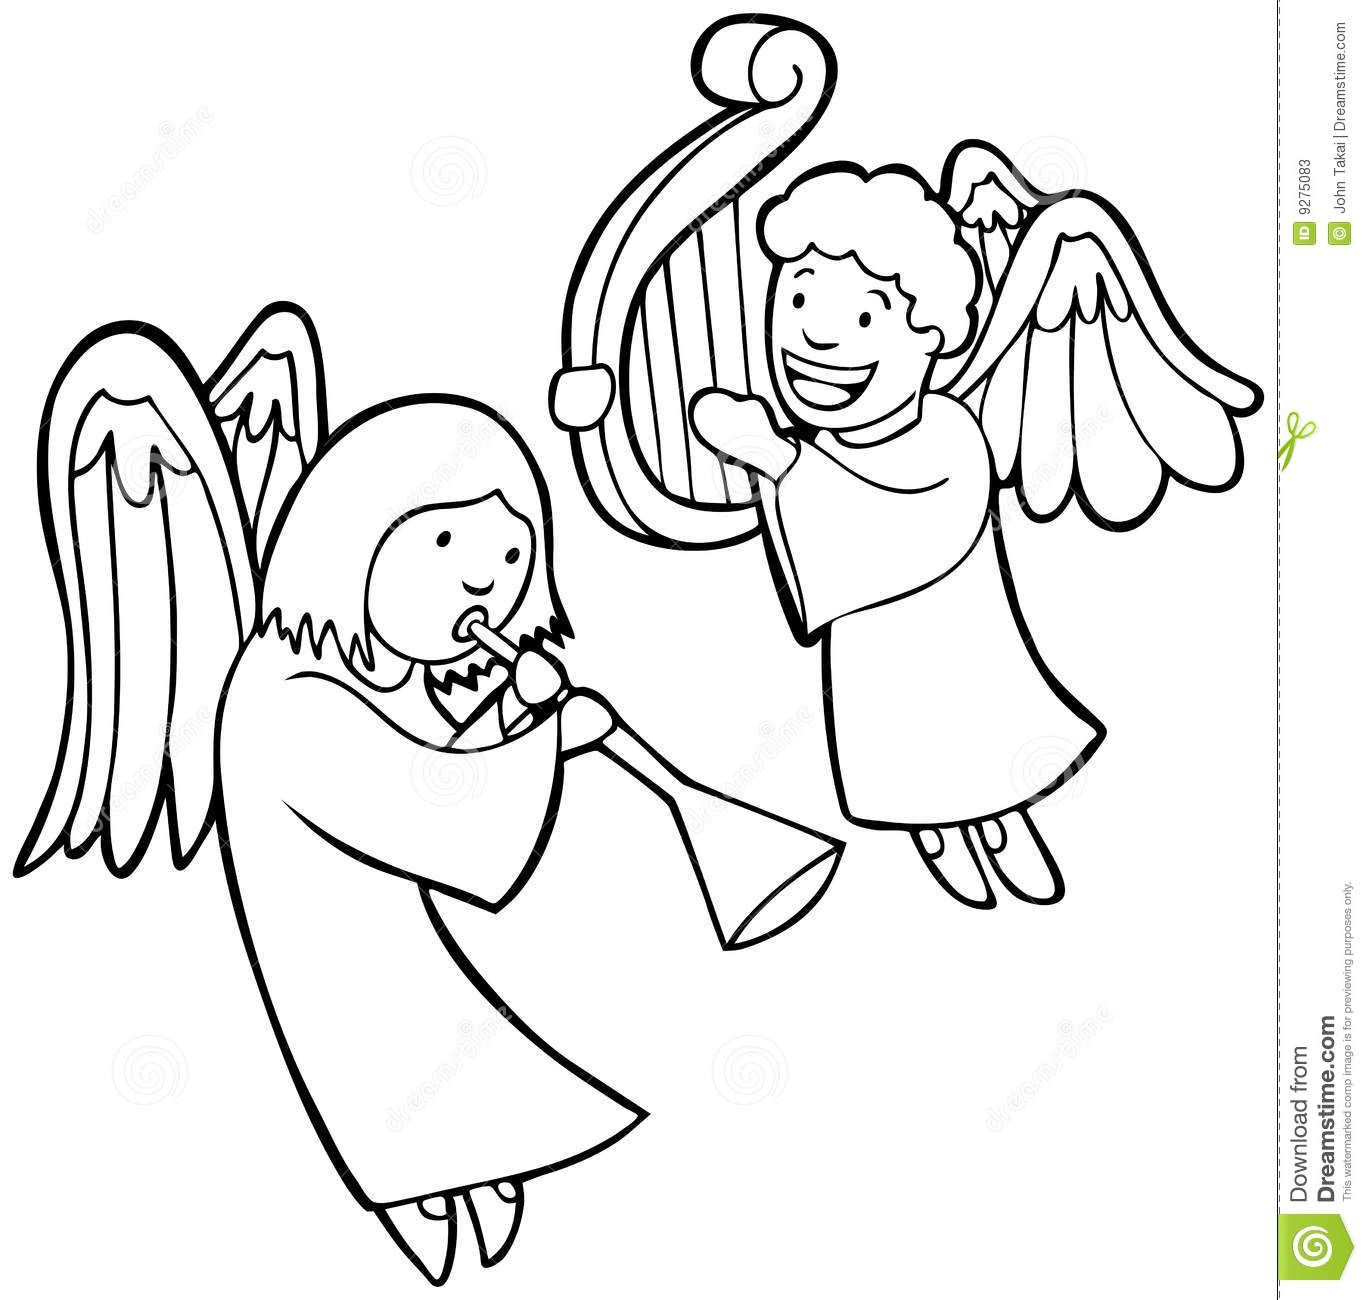 Angels Clipart Google Search Angel Coloring Pages Cartoon Angel Wings Free Art Prints